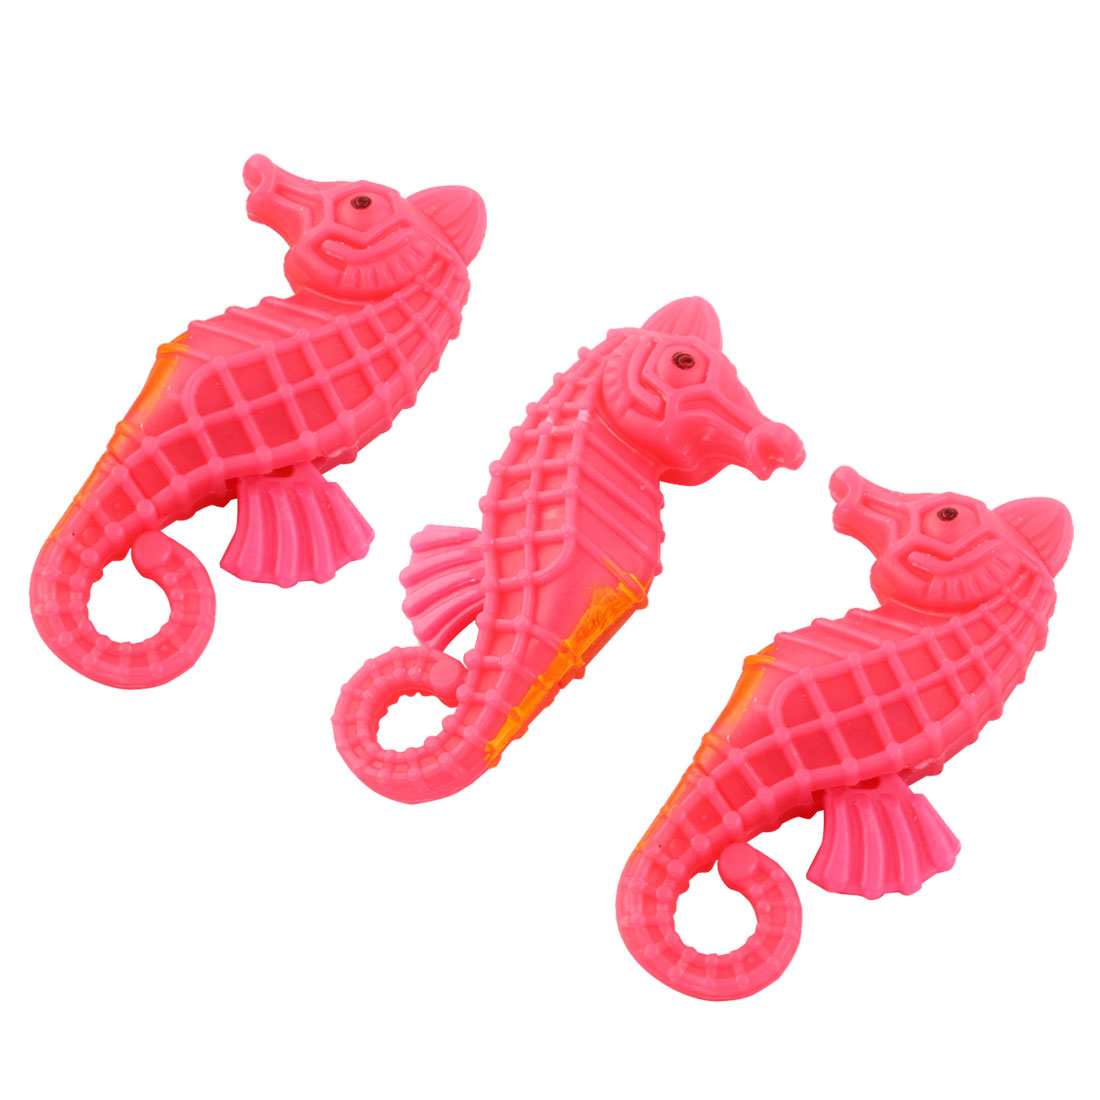 Fish Tank Aquarium Plastic Artificial Seahorses Pink Orange 2.2 Inch Long 3 Pcs